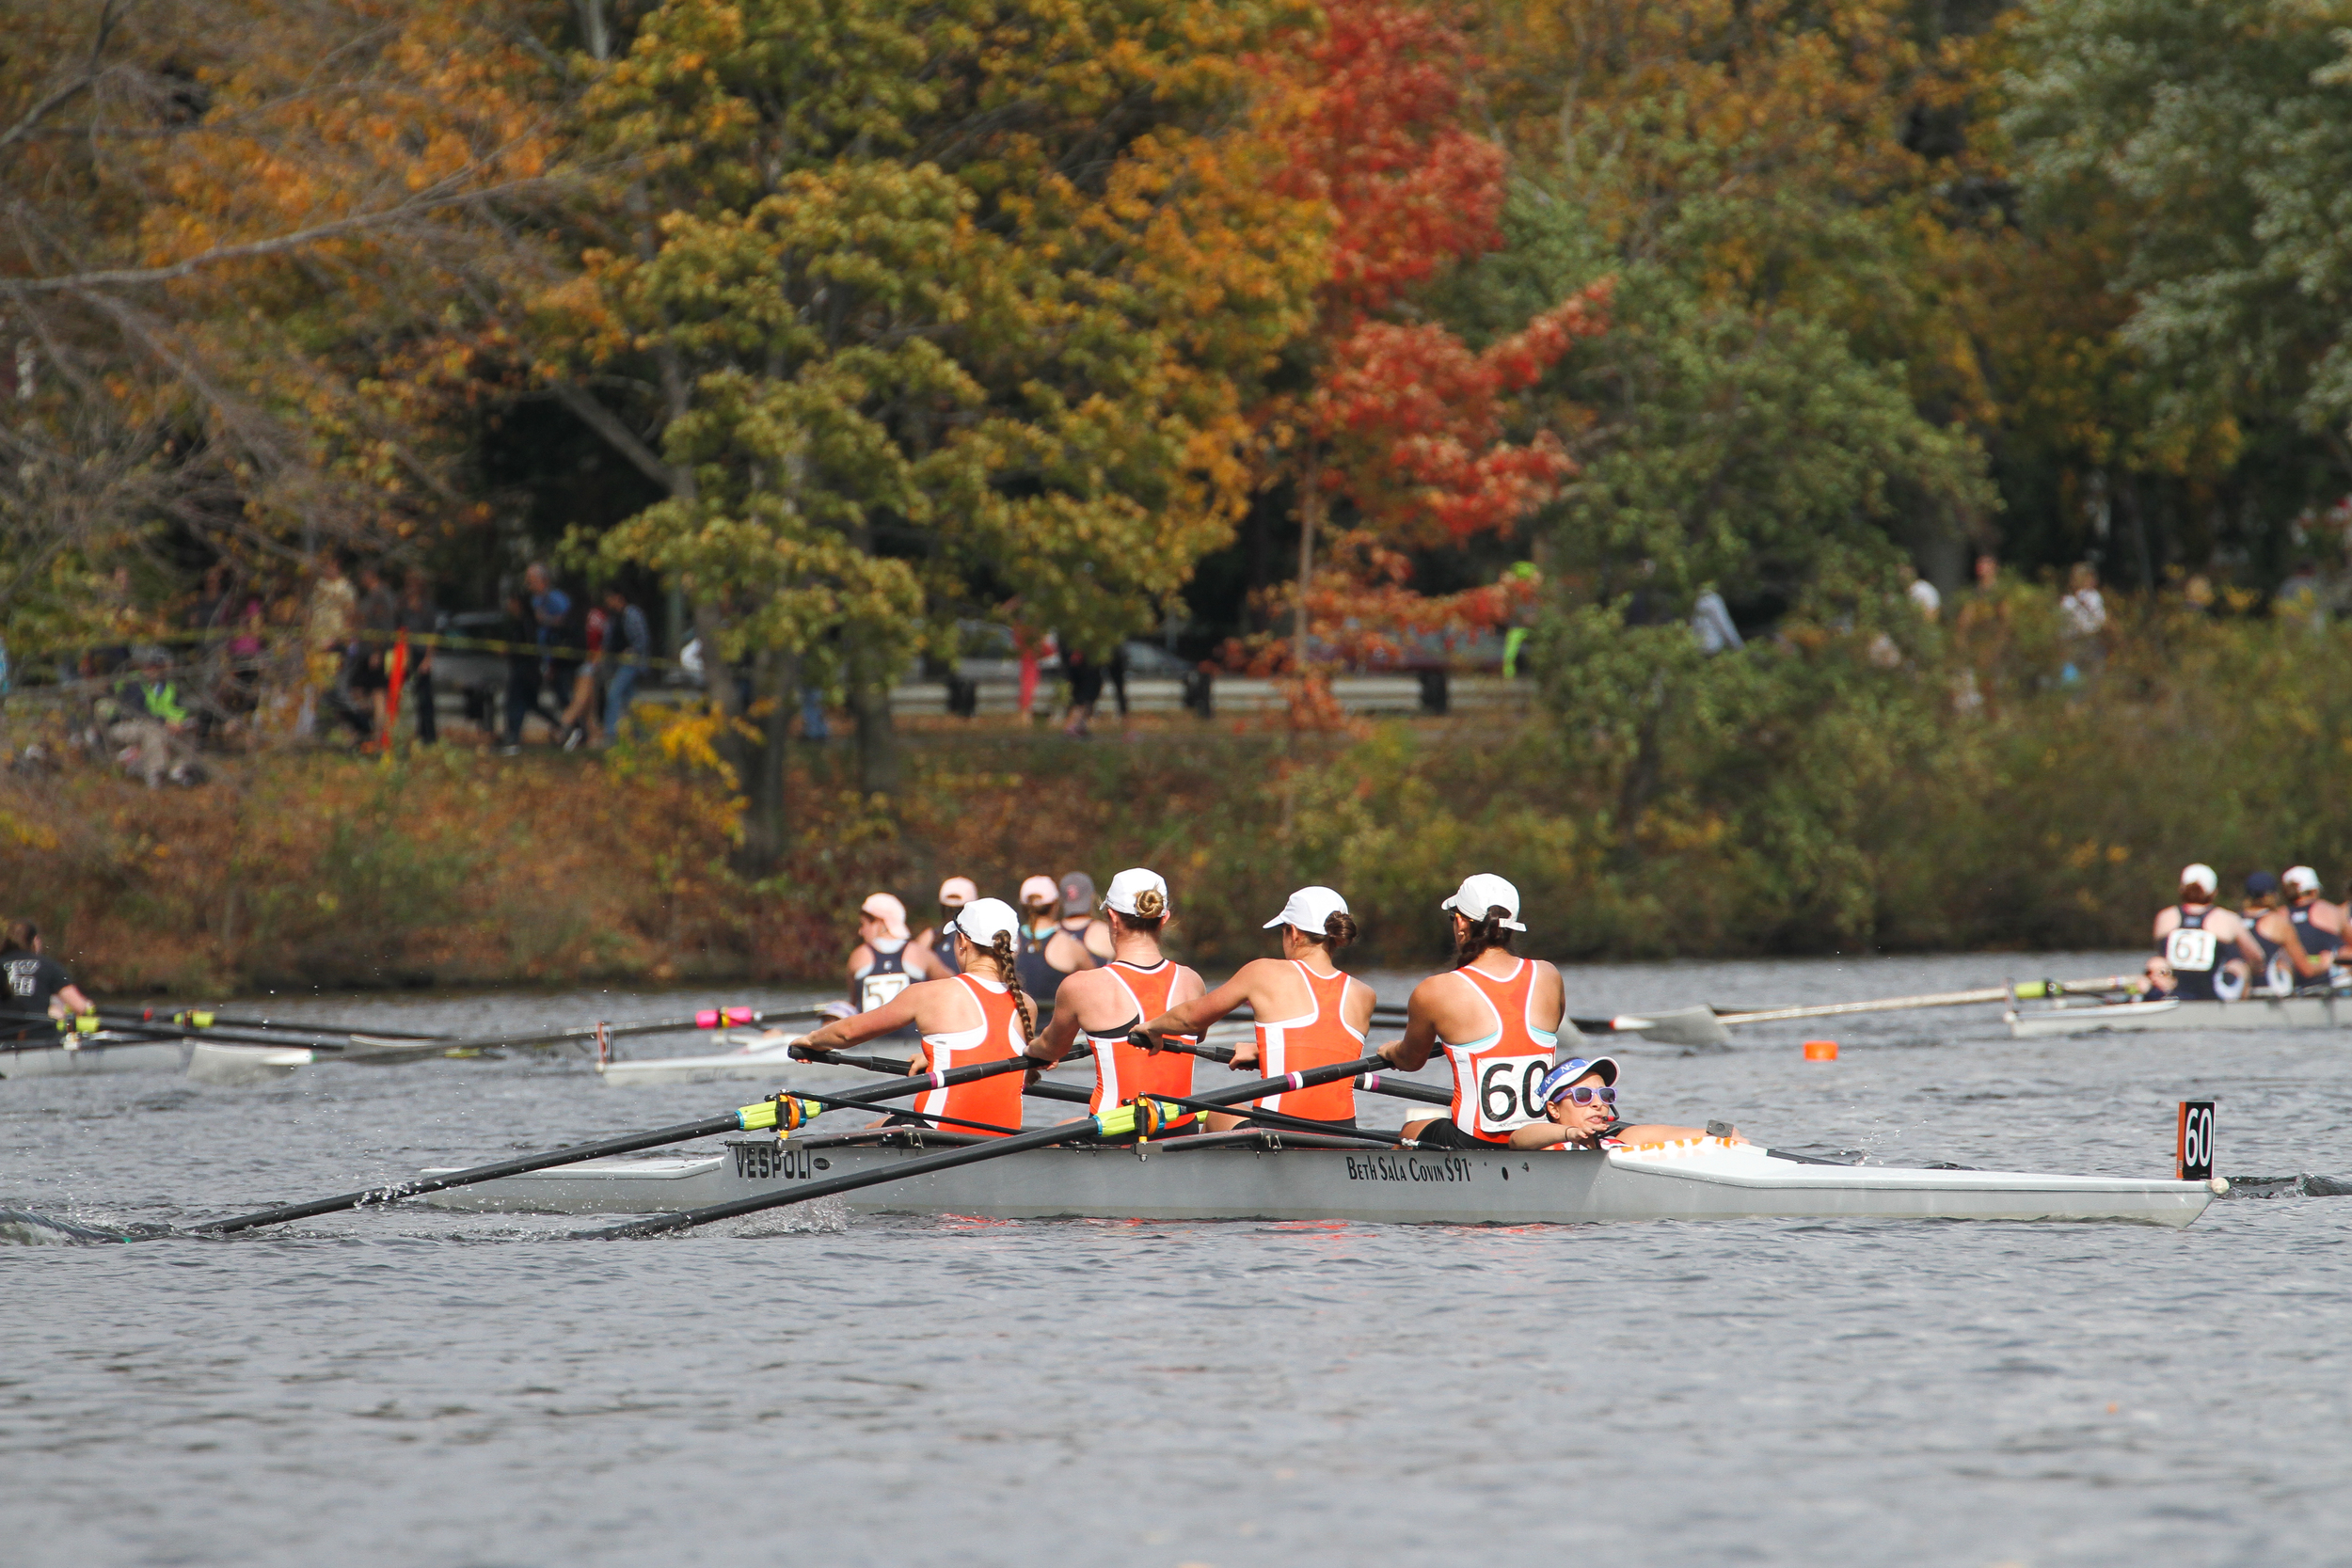 The Princeton lightweight women's 4+, racing in the Club 4 event, approaches the Elliot bridge